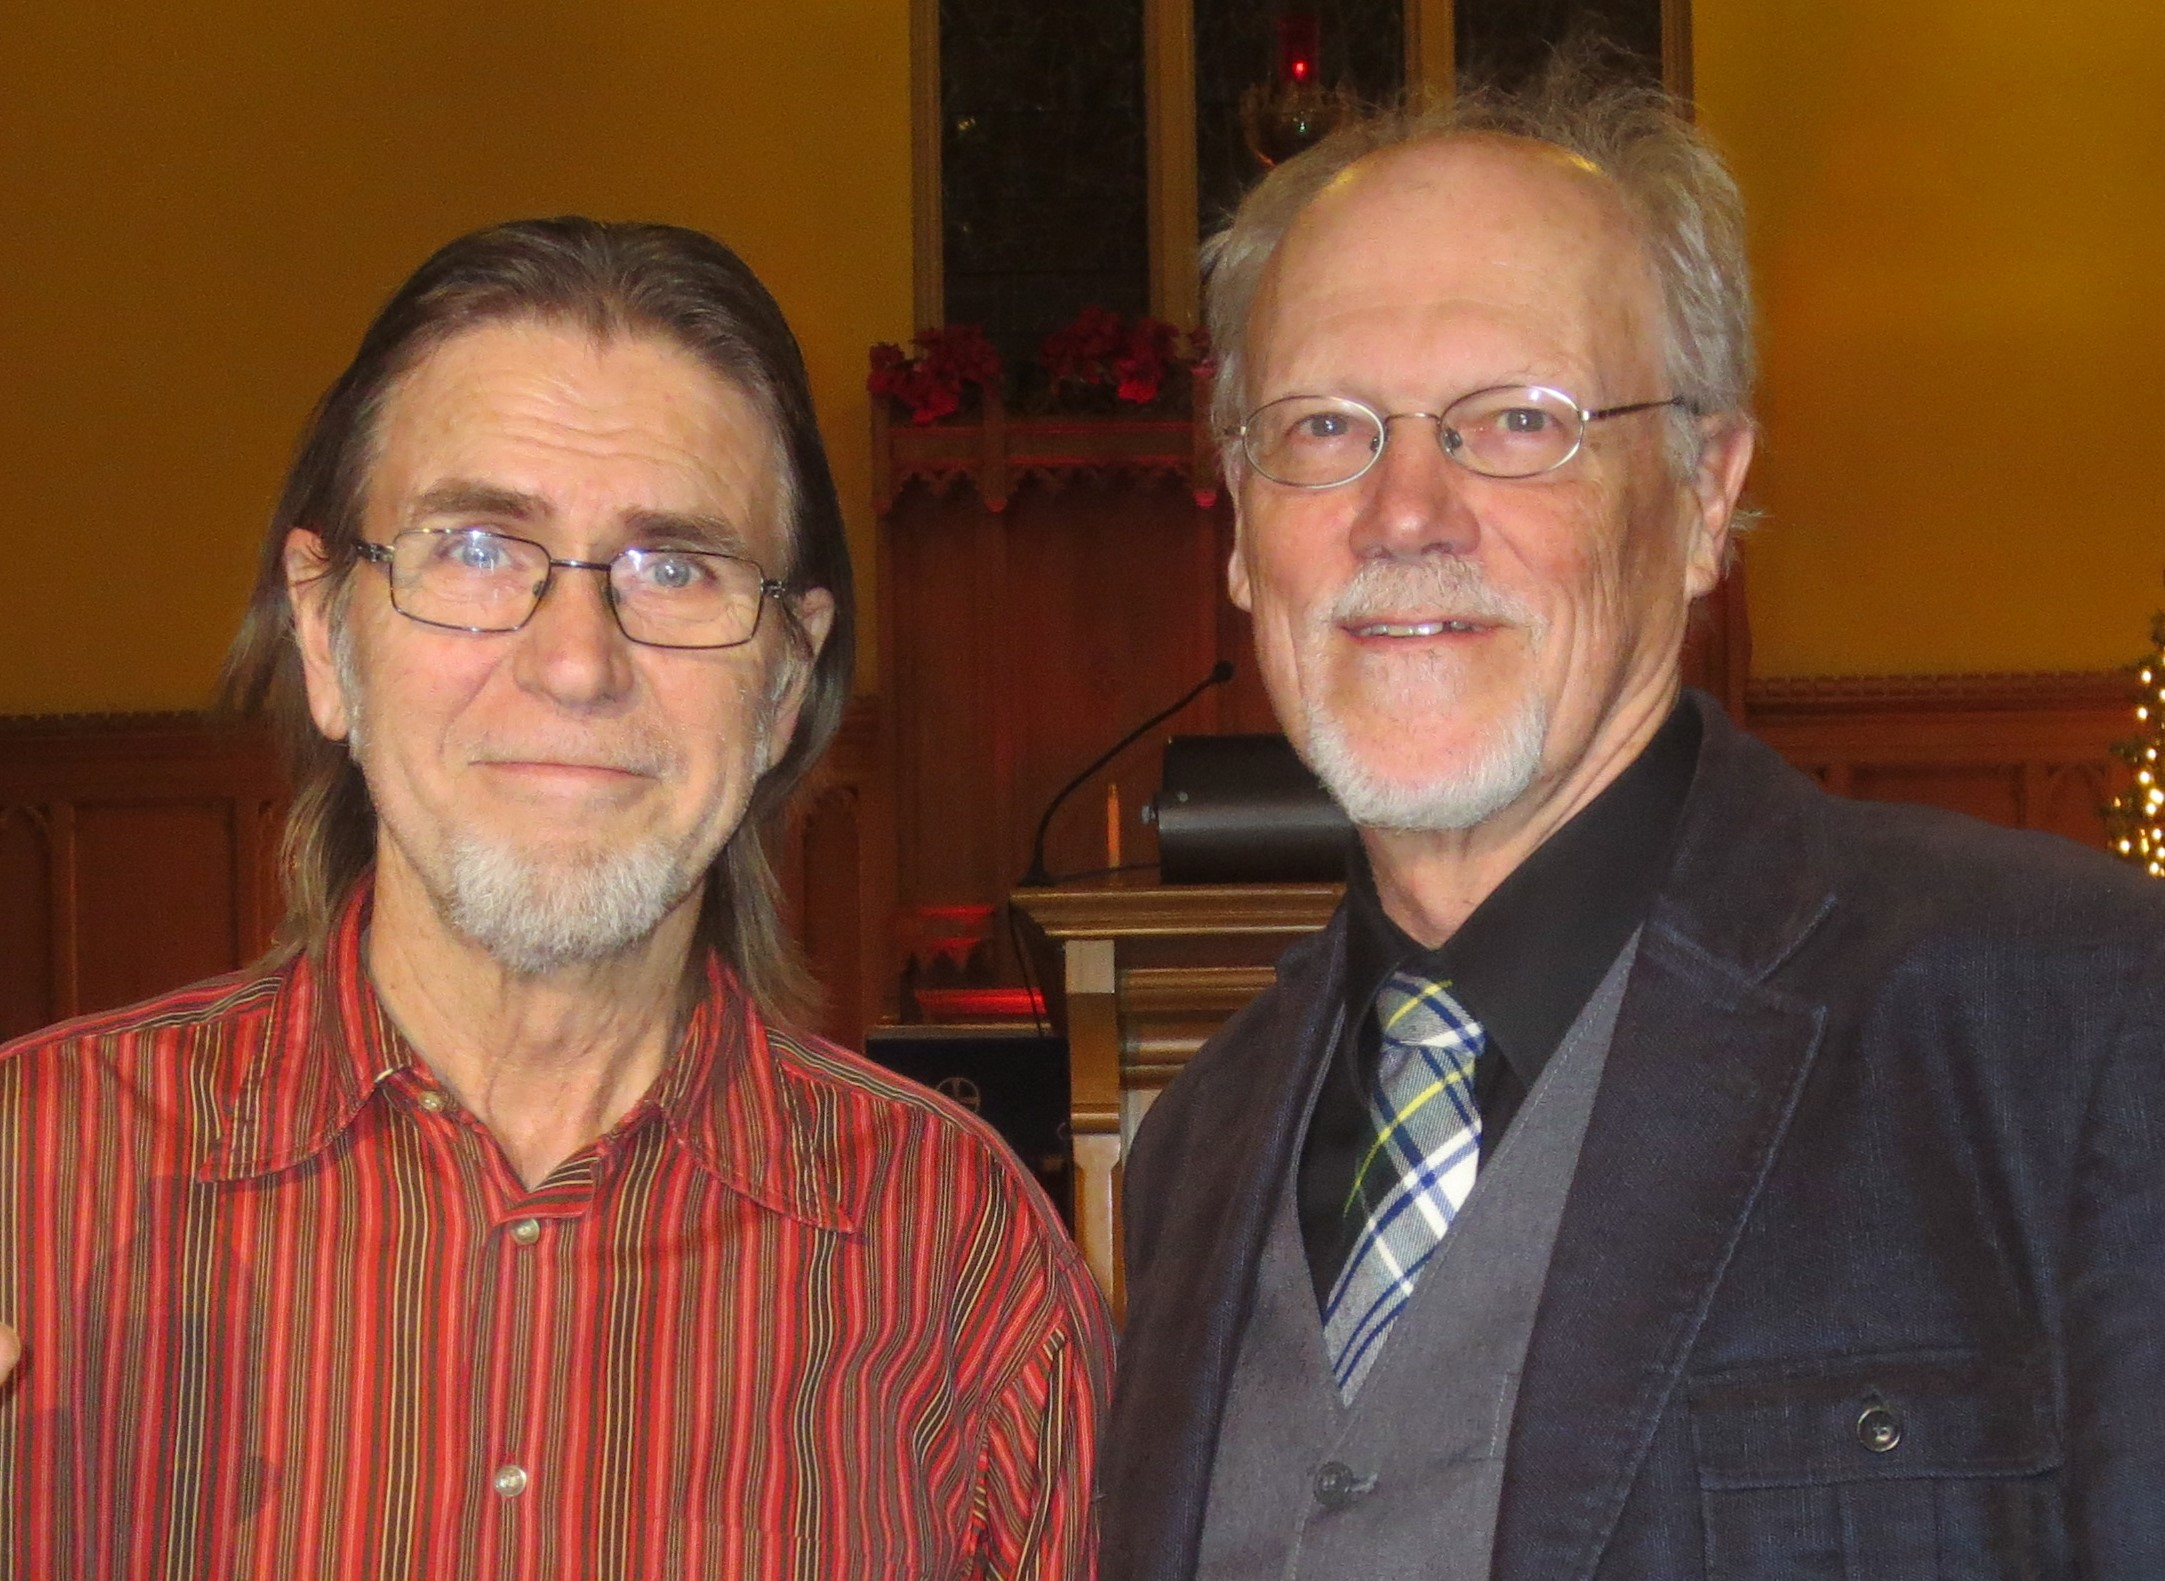 Our Annual Dramatic Reading of Charles Dickens' 'A Christmas Carol' took place Friday, December 7, 2018. Providing music for the evening were, L to R: Glen Soulis, and Bradley Moggach, Music Director at St. Peter's.